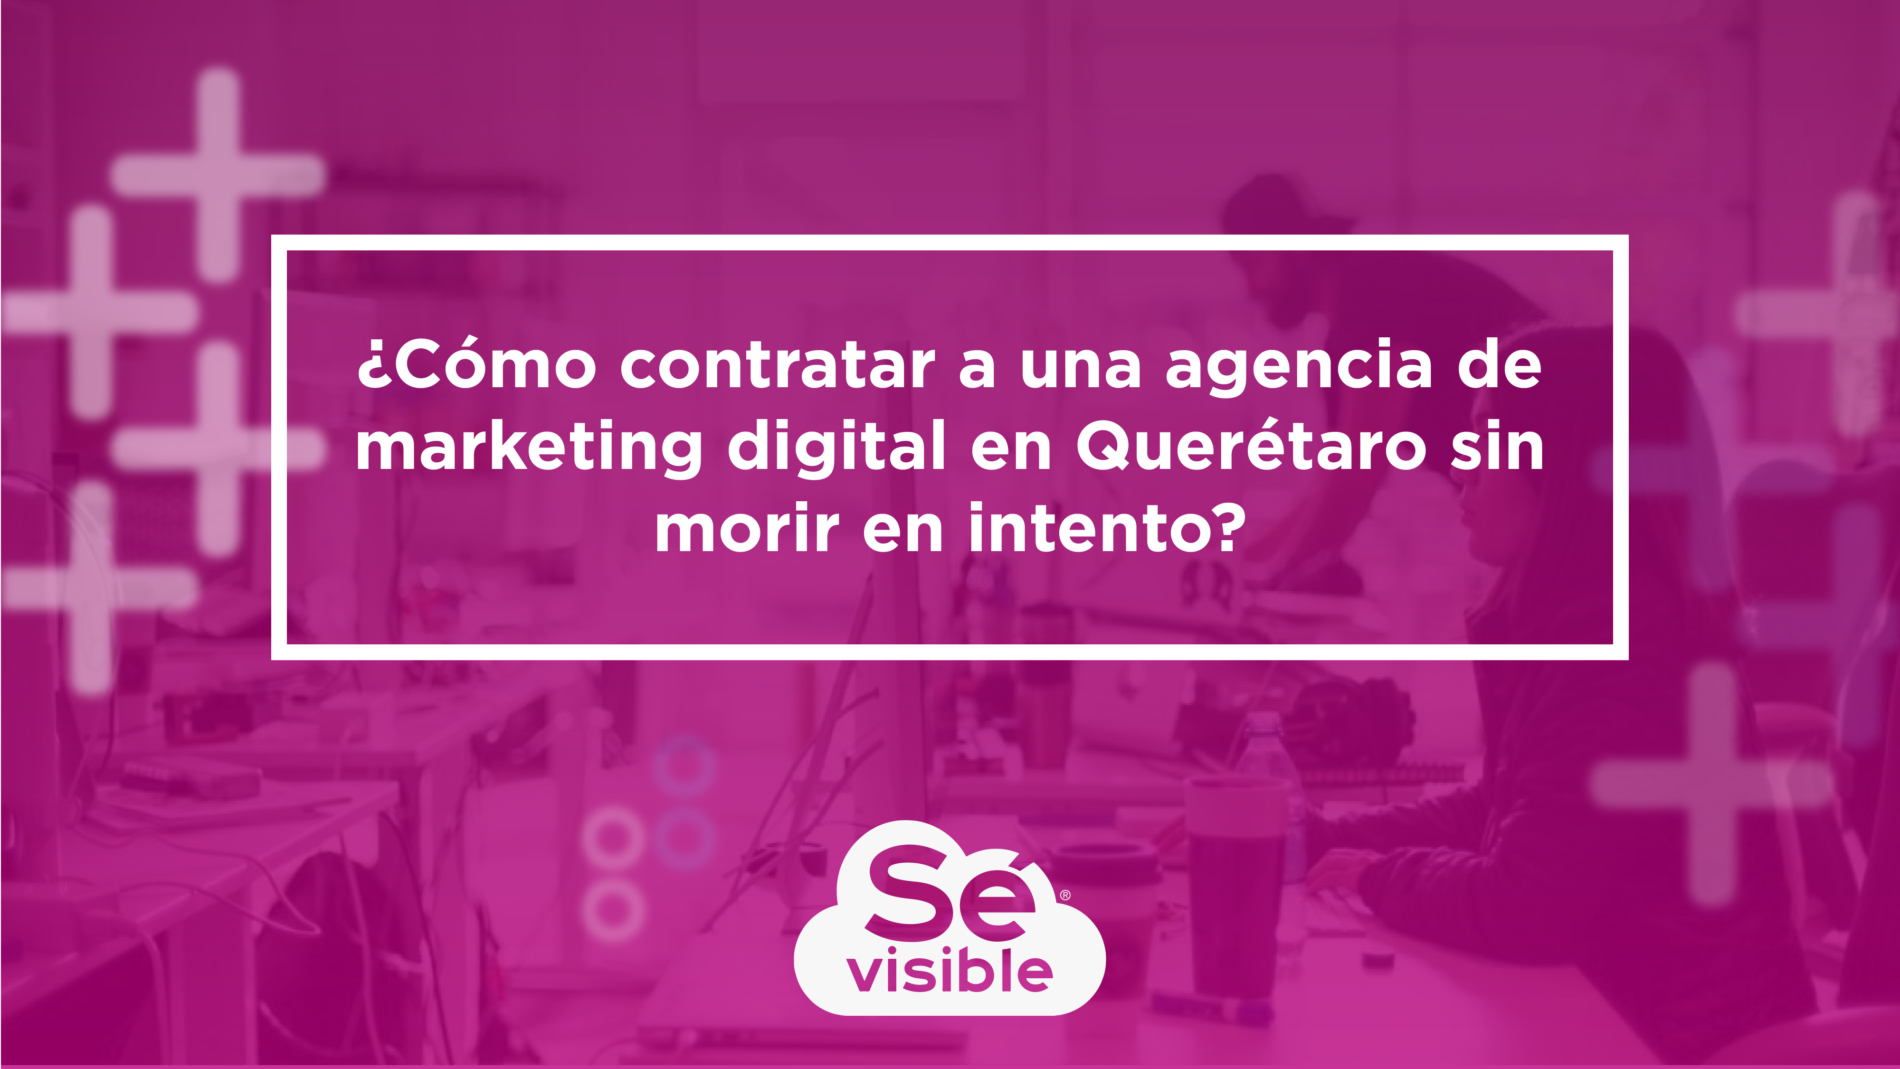 AGENCIA DE MARKETING DIGITAL EN QUERÉTARO